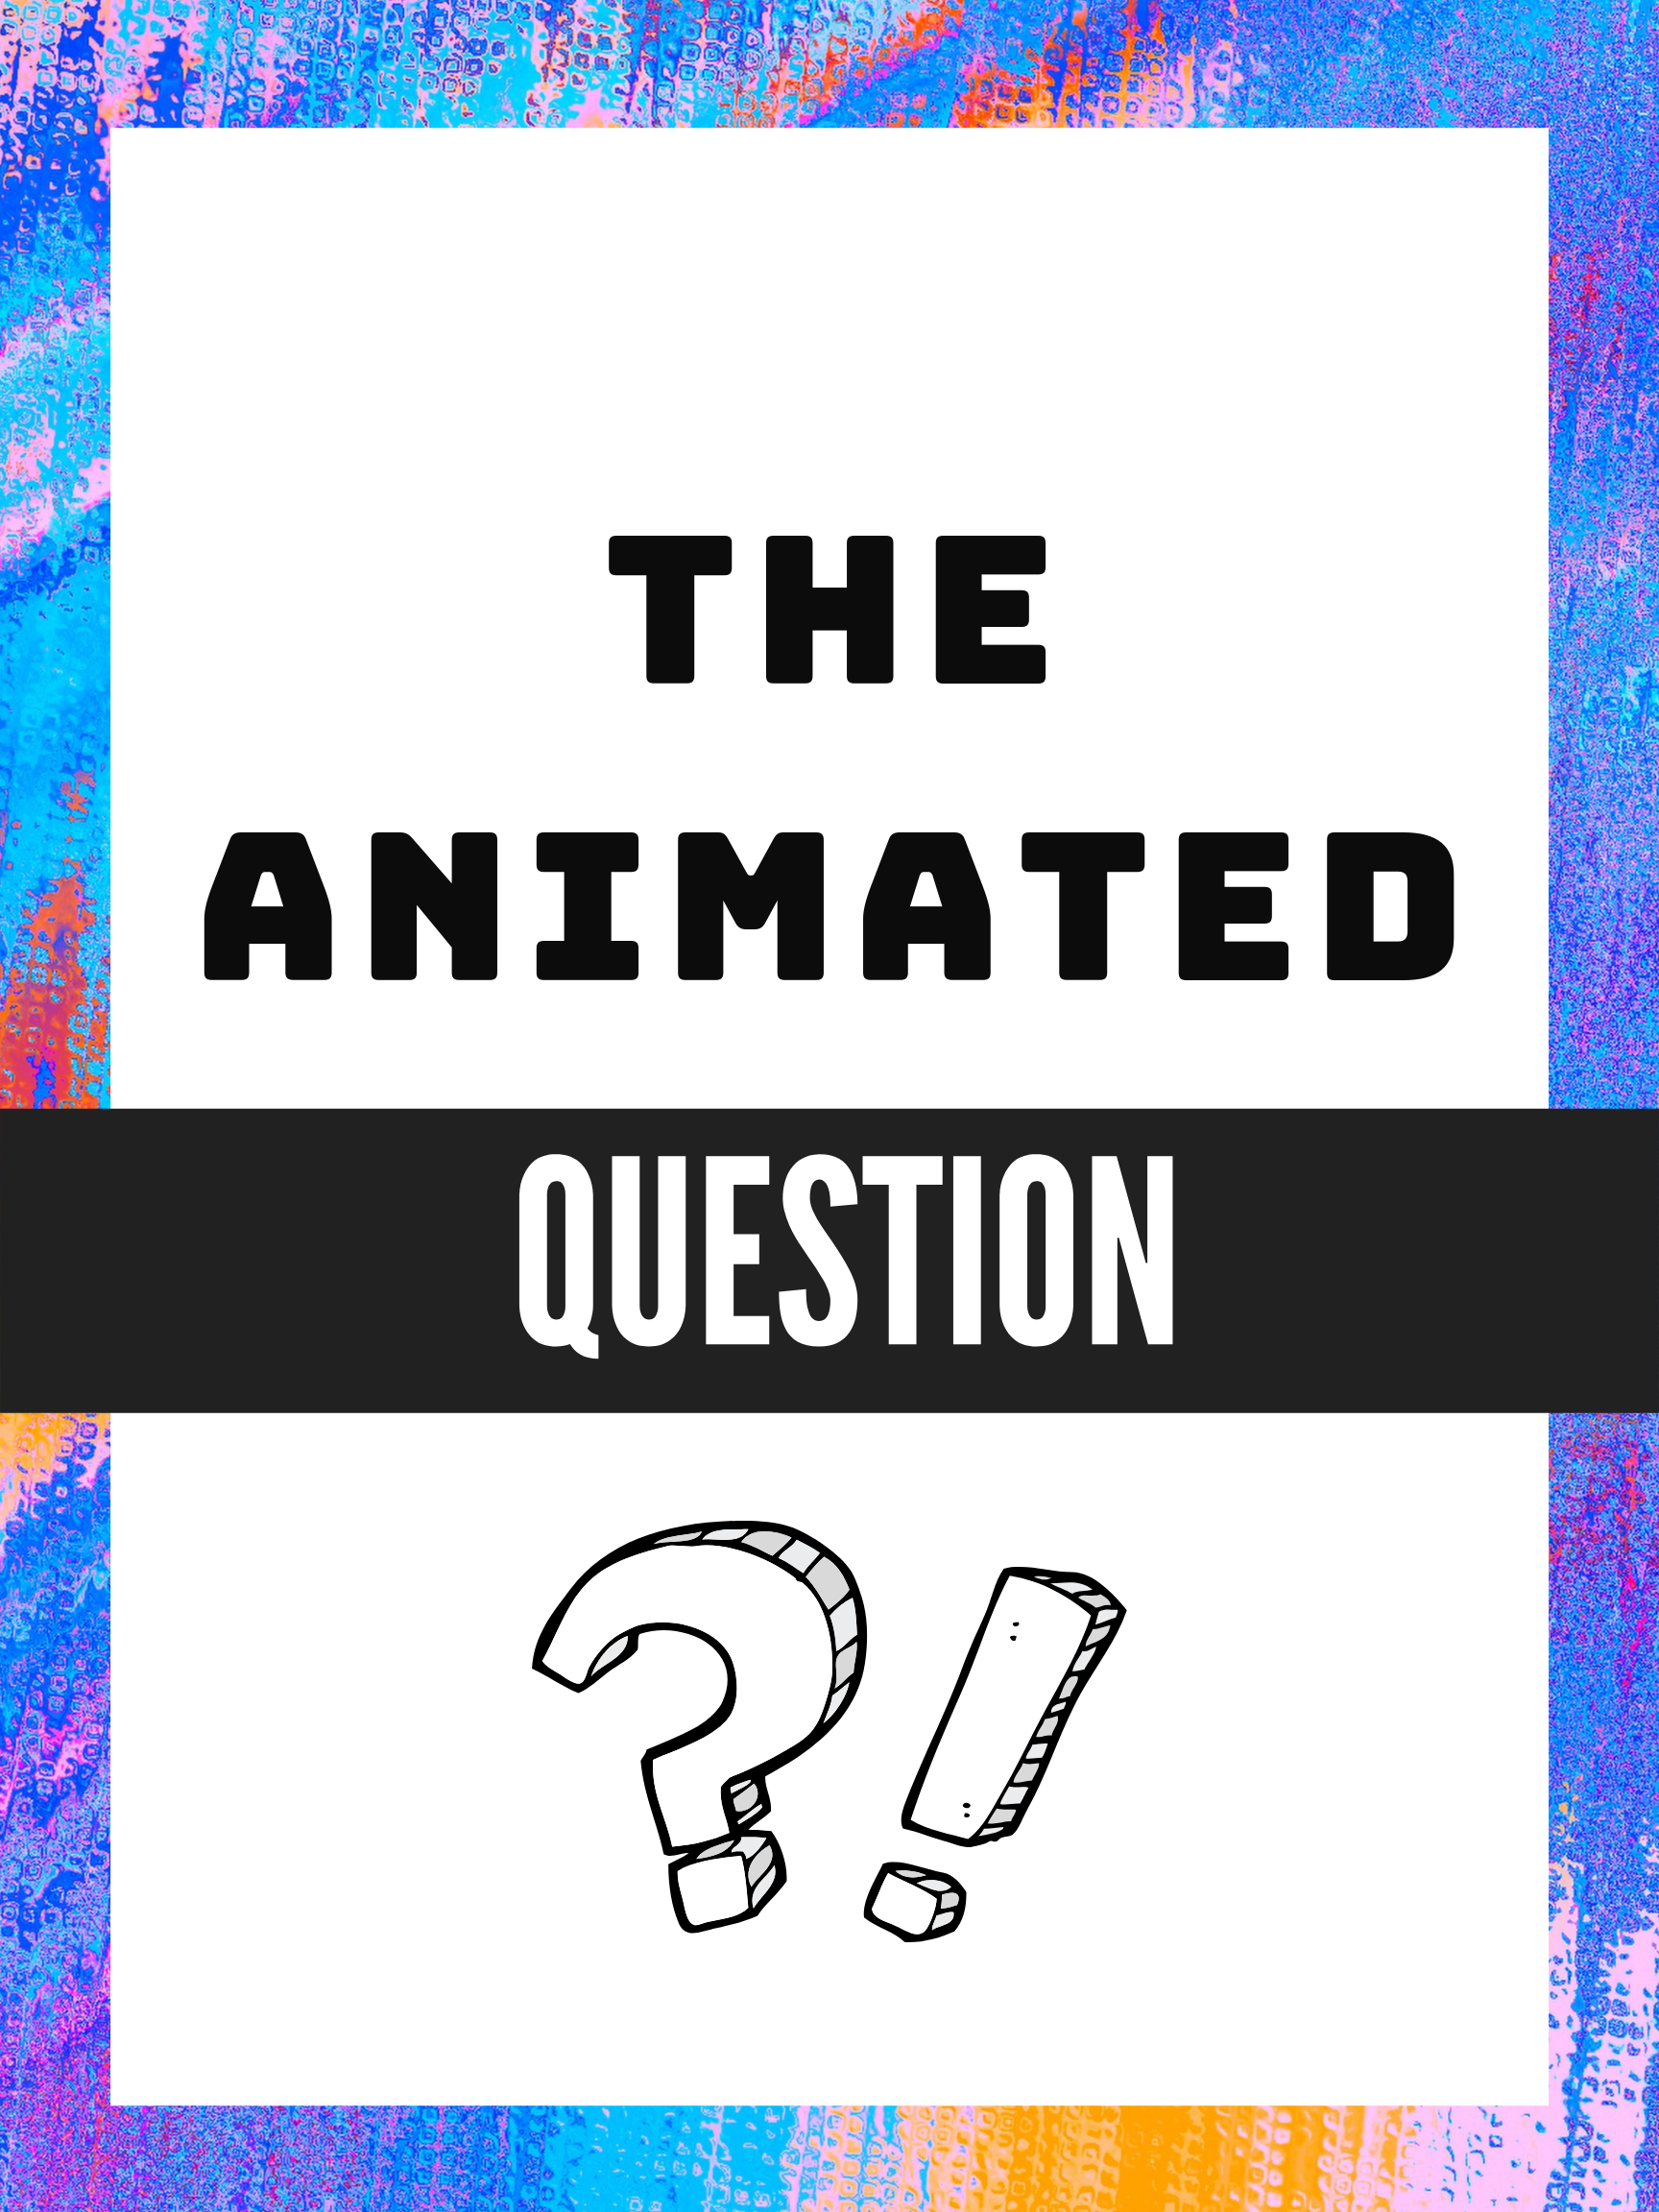 anim_question.png